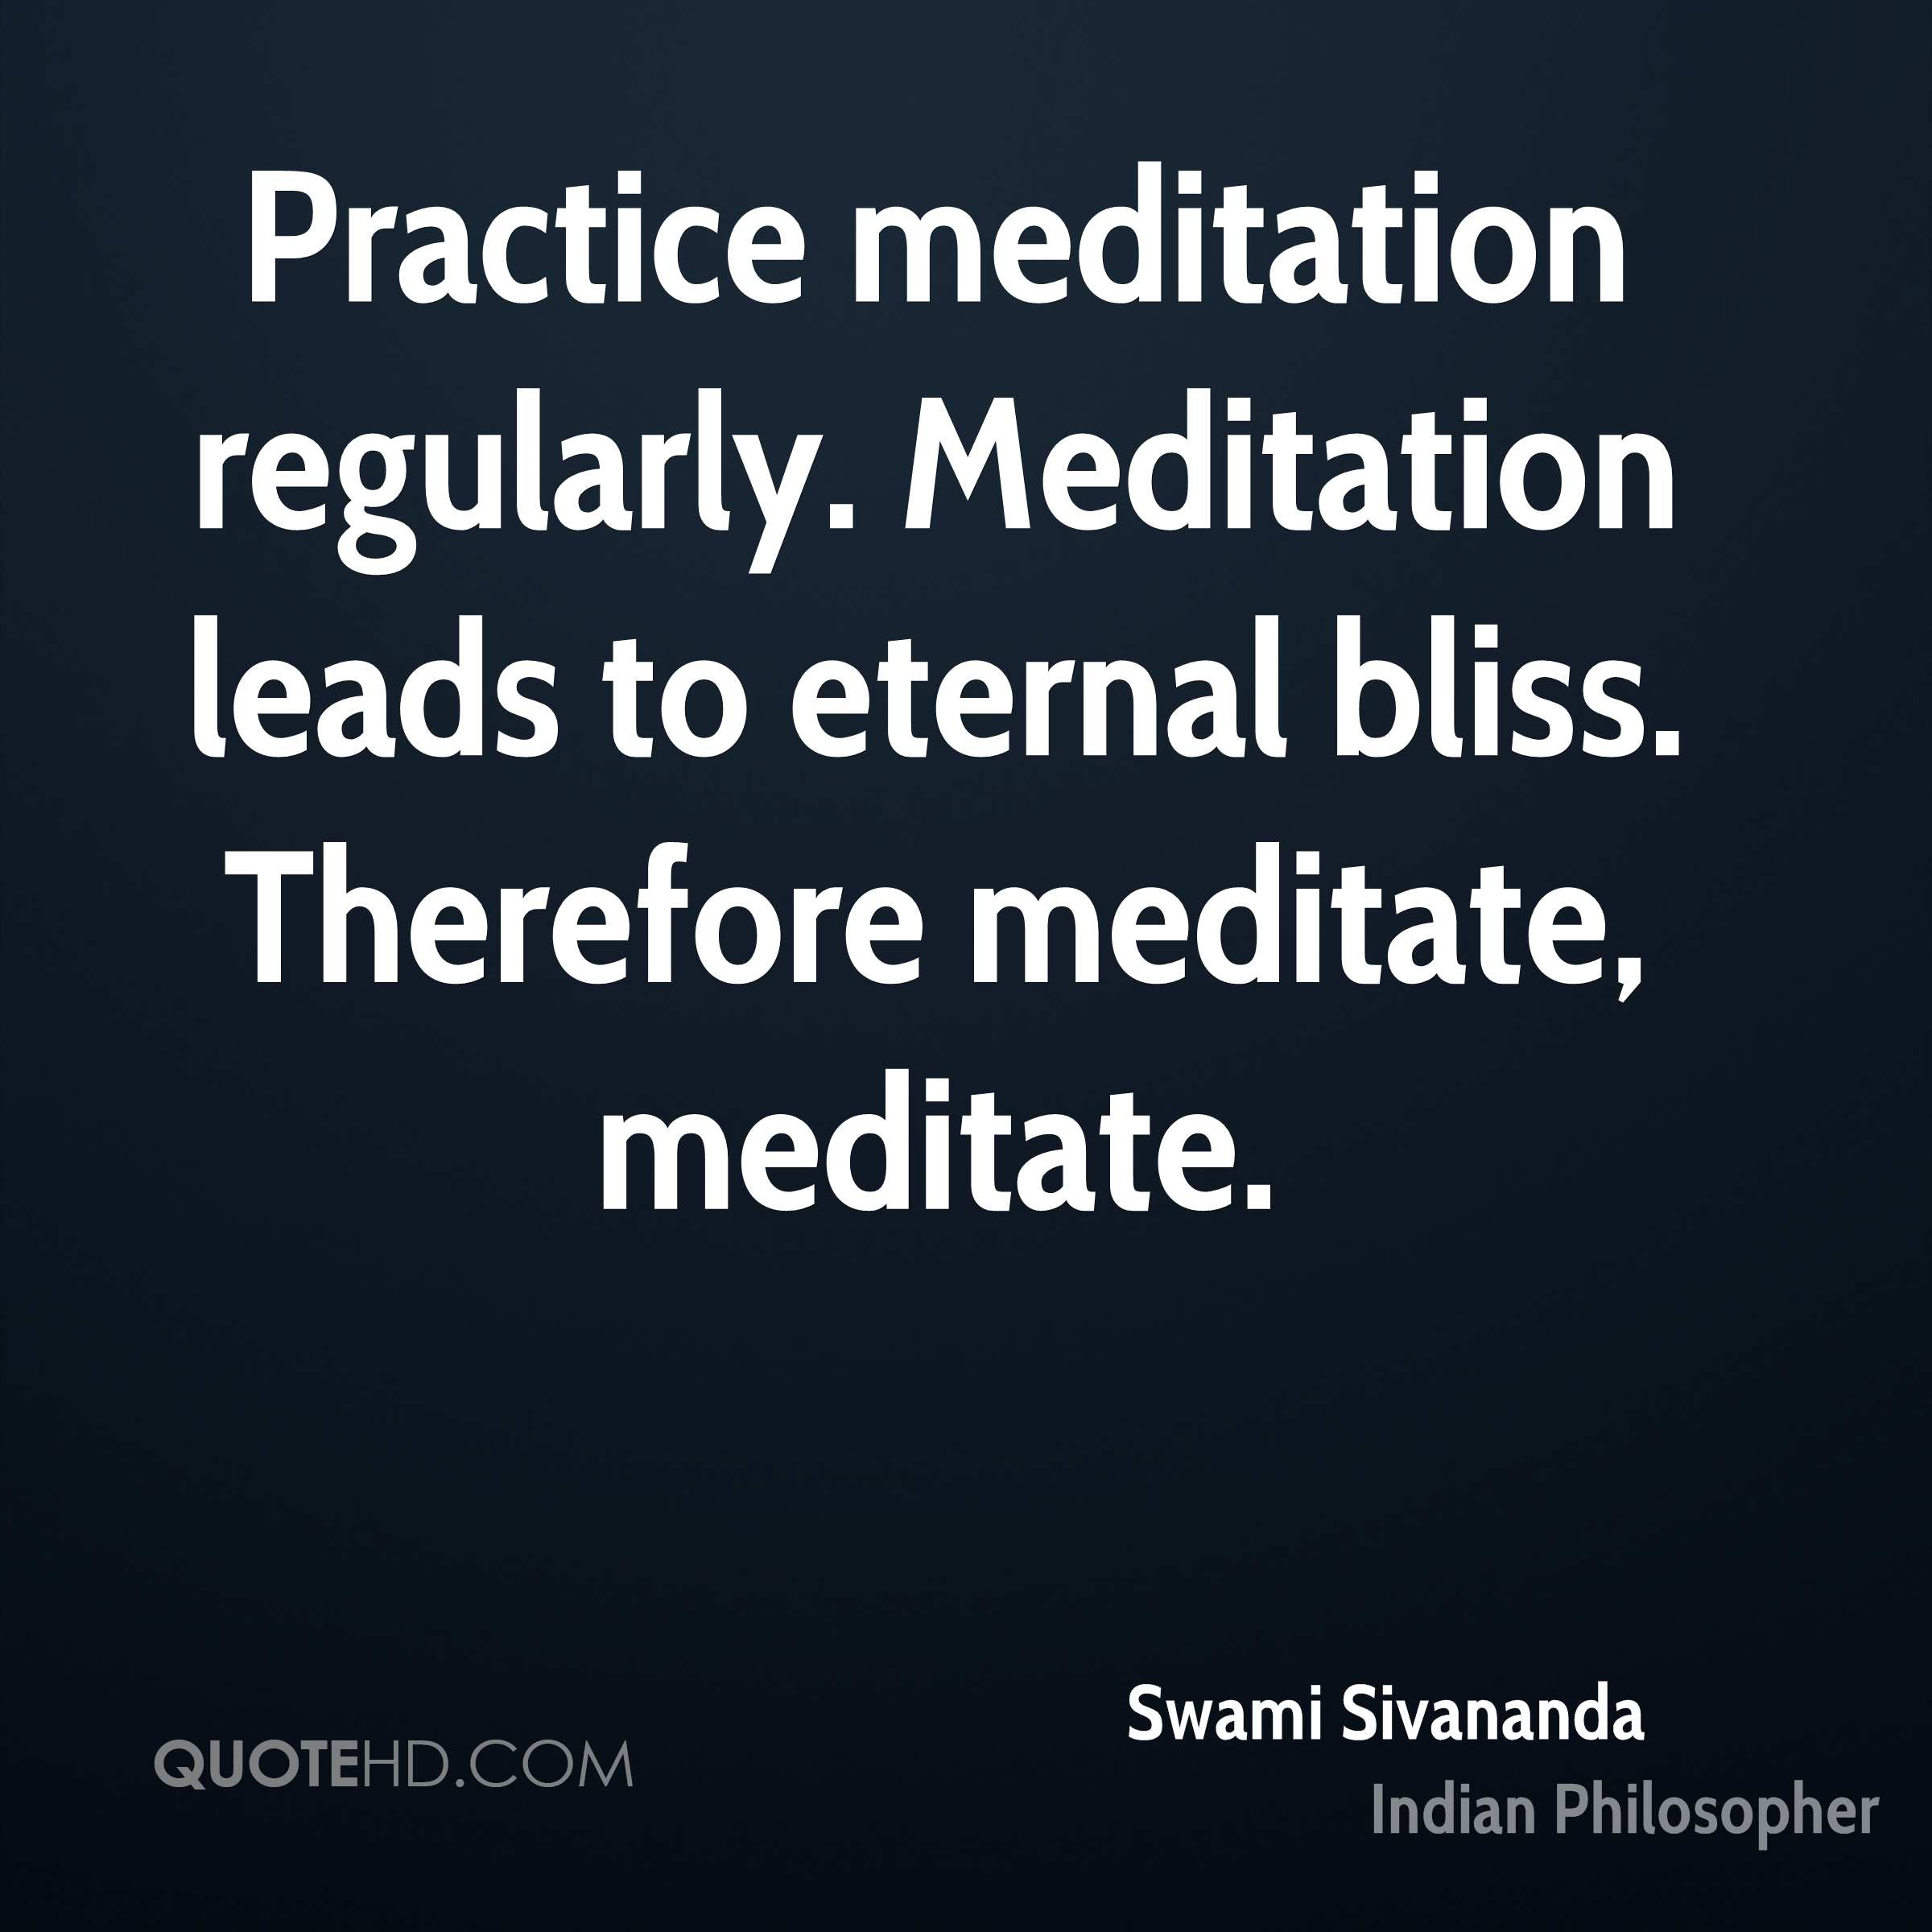 Practice meditation regularly. Meditation leads to eternal bliss. Therefore meditate, meditate.